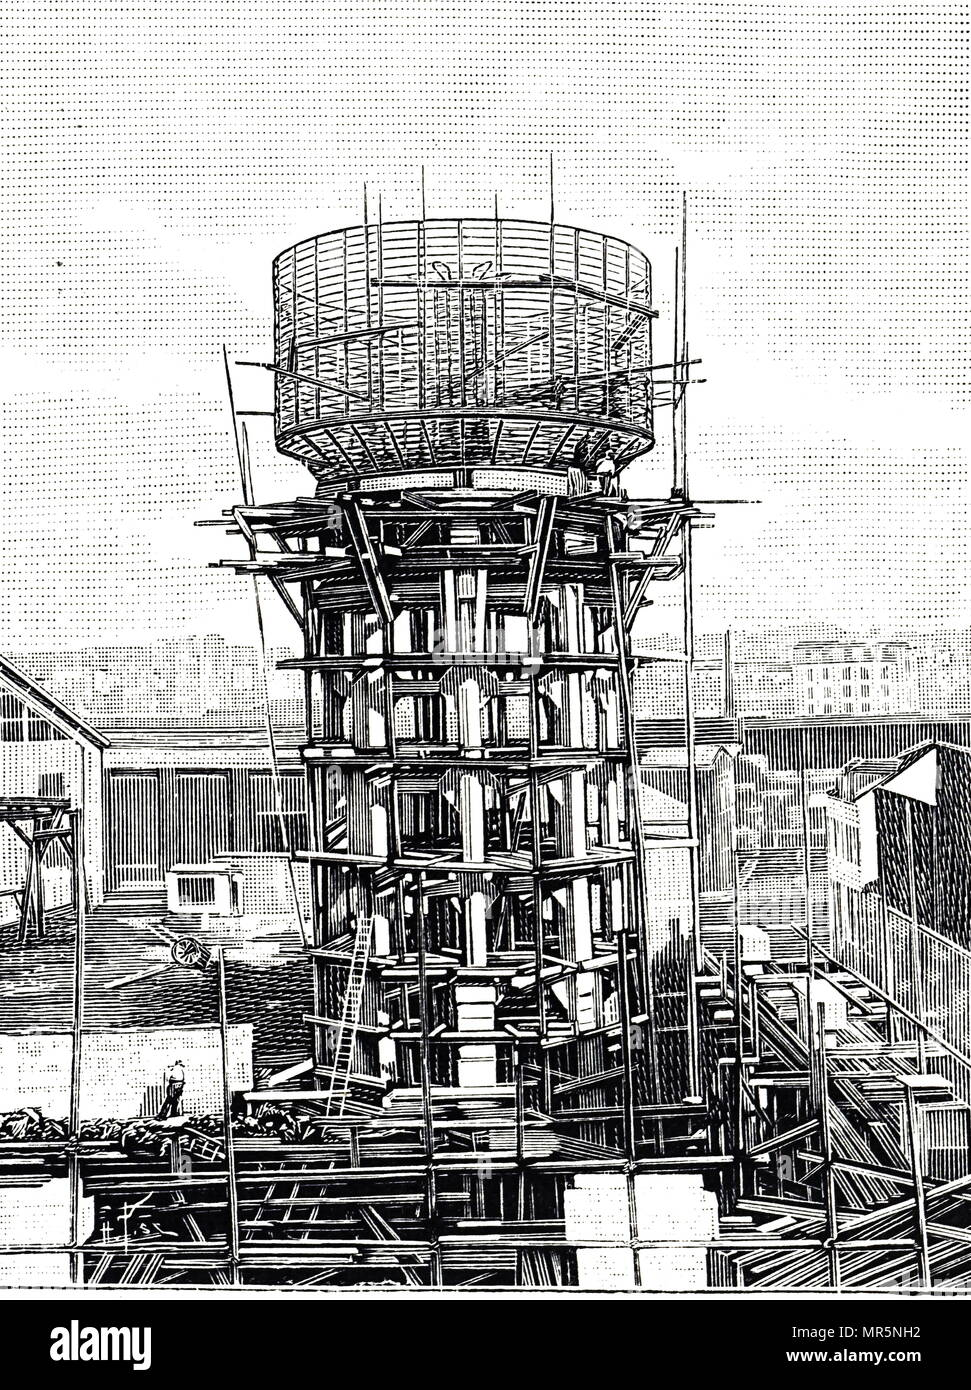 Engraving depicting a water tower being reinforced with concrete. Dated 20th century - Stock Image